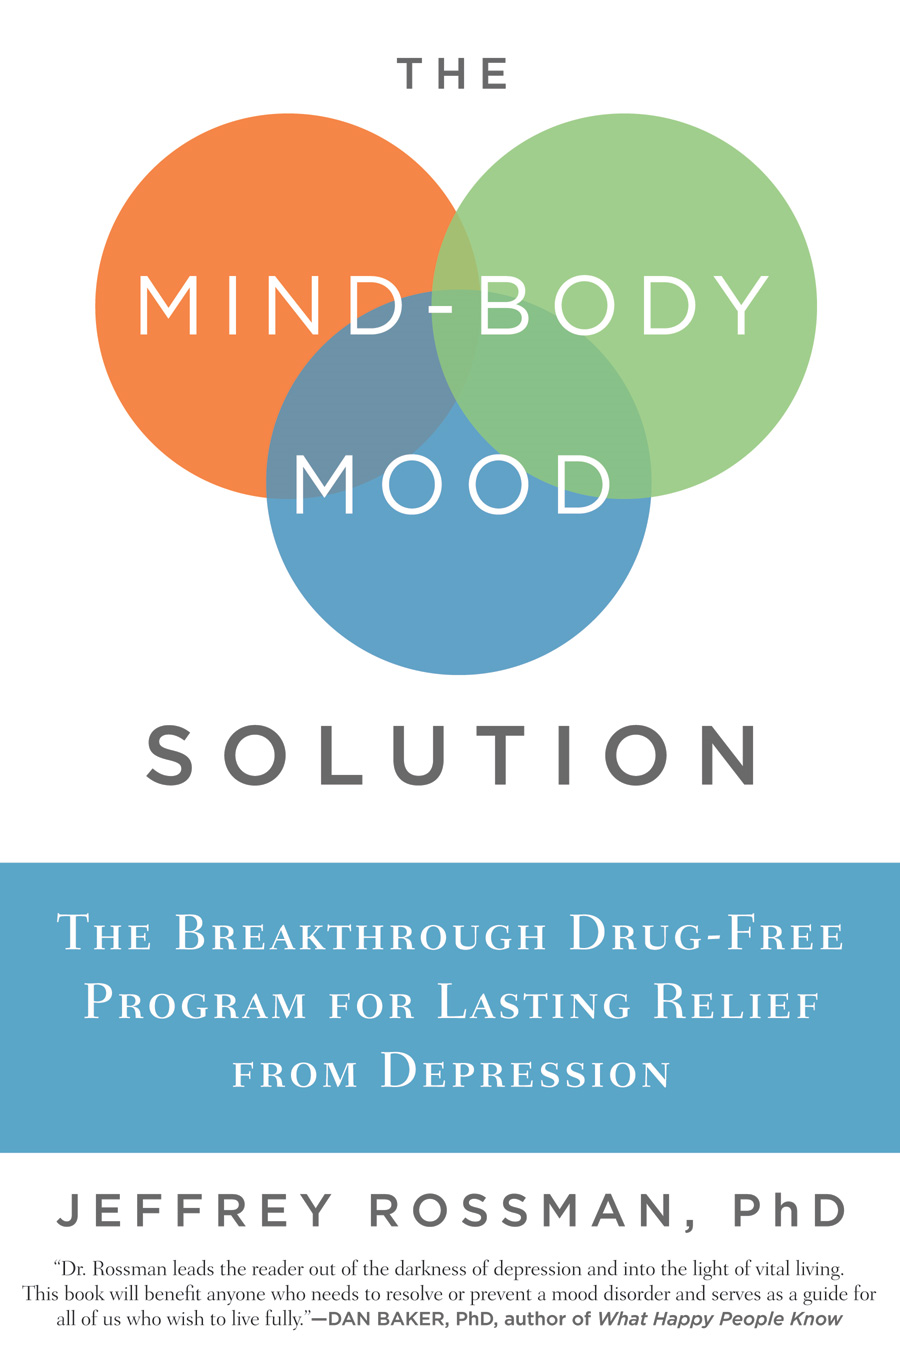 The Mind-Body Mood Solution: The Breakthrough Drug-Free Program for Lasting Relief from Depression By: Jeffrey Rossman